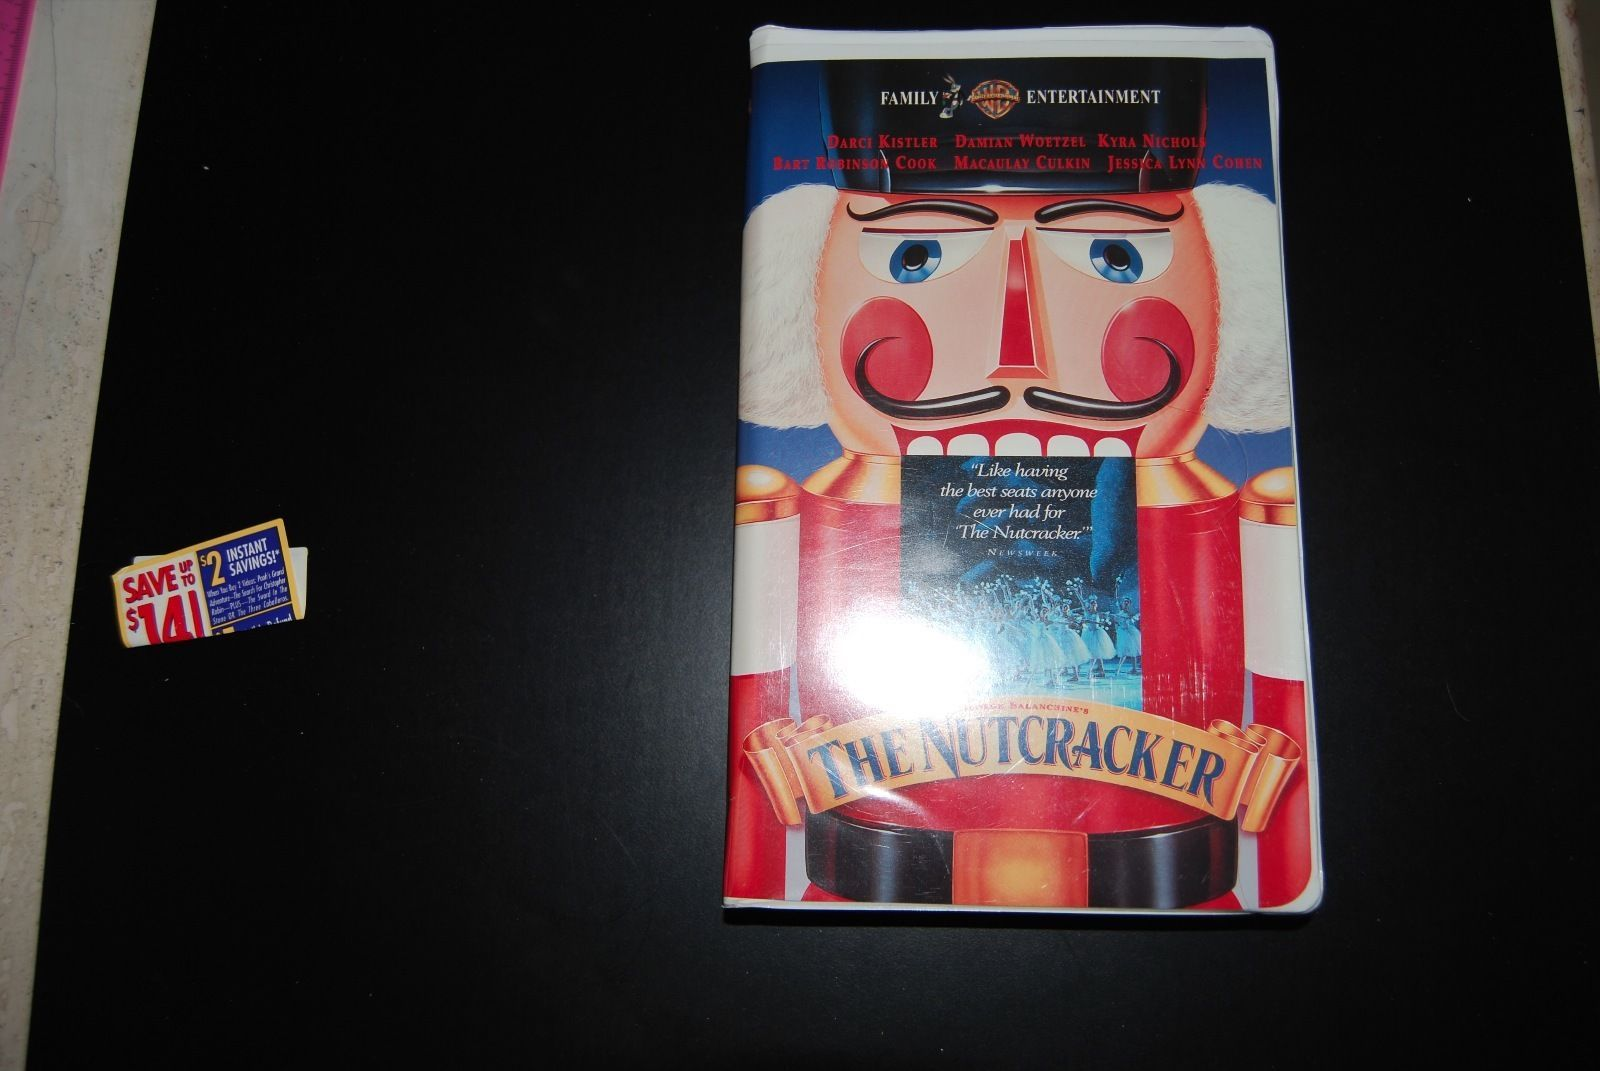 Primary image for The Nutcracker - George Balanchine (VHS, 1995, Clamshell)